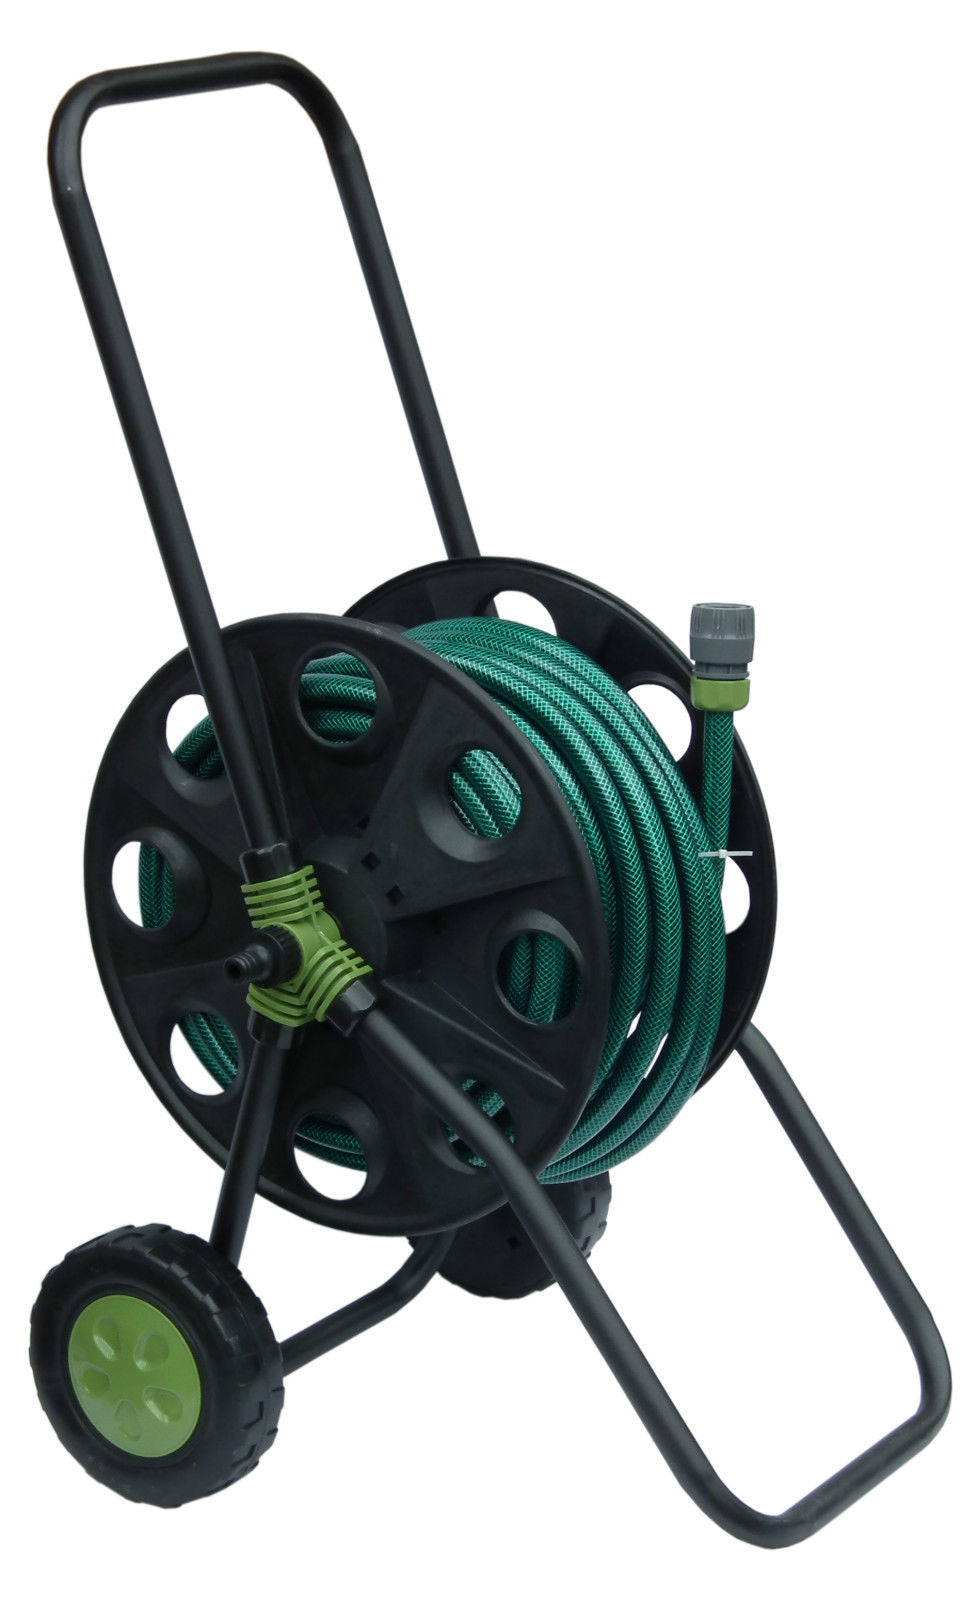 30M Hose Reel Cart Trolley Set  sc 1 st  JMart Warehouse : hose reel set - www.happyfamilyinstitute.com